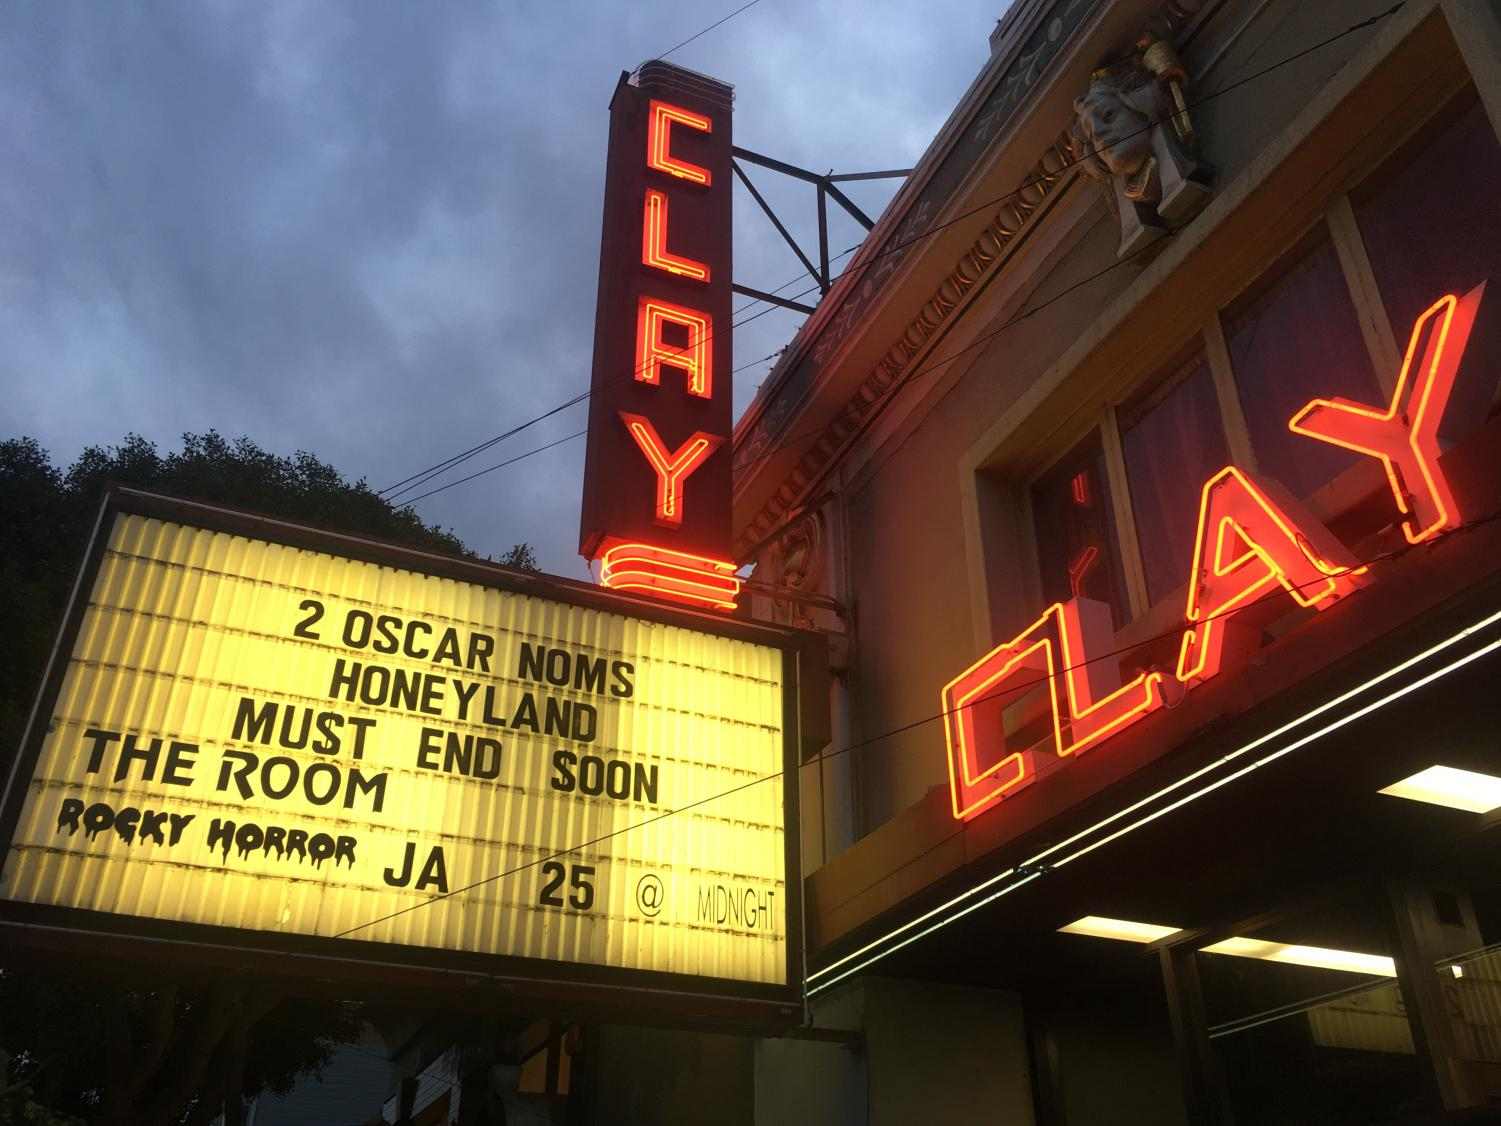 The Clay Theater displays its showings on its final week before its closing. The theater has celebrated more than 100 years as a San Franciscan cinema staple.